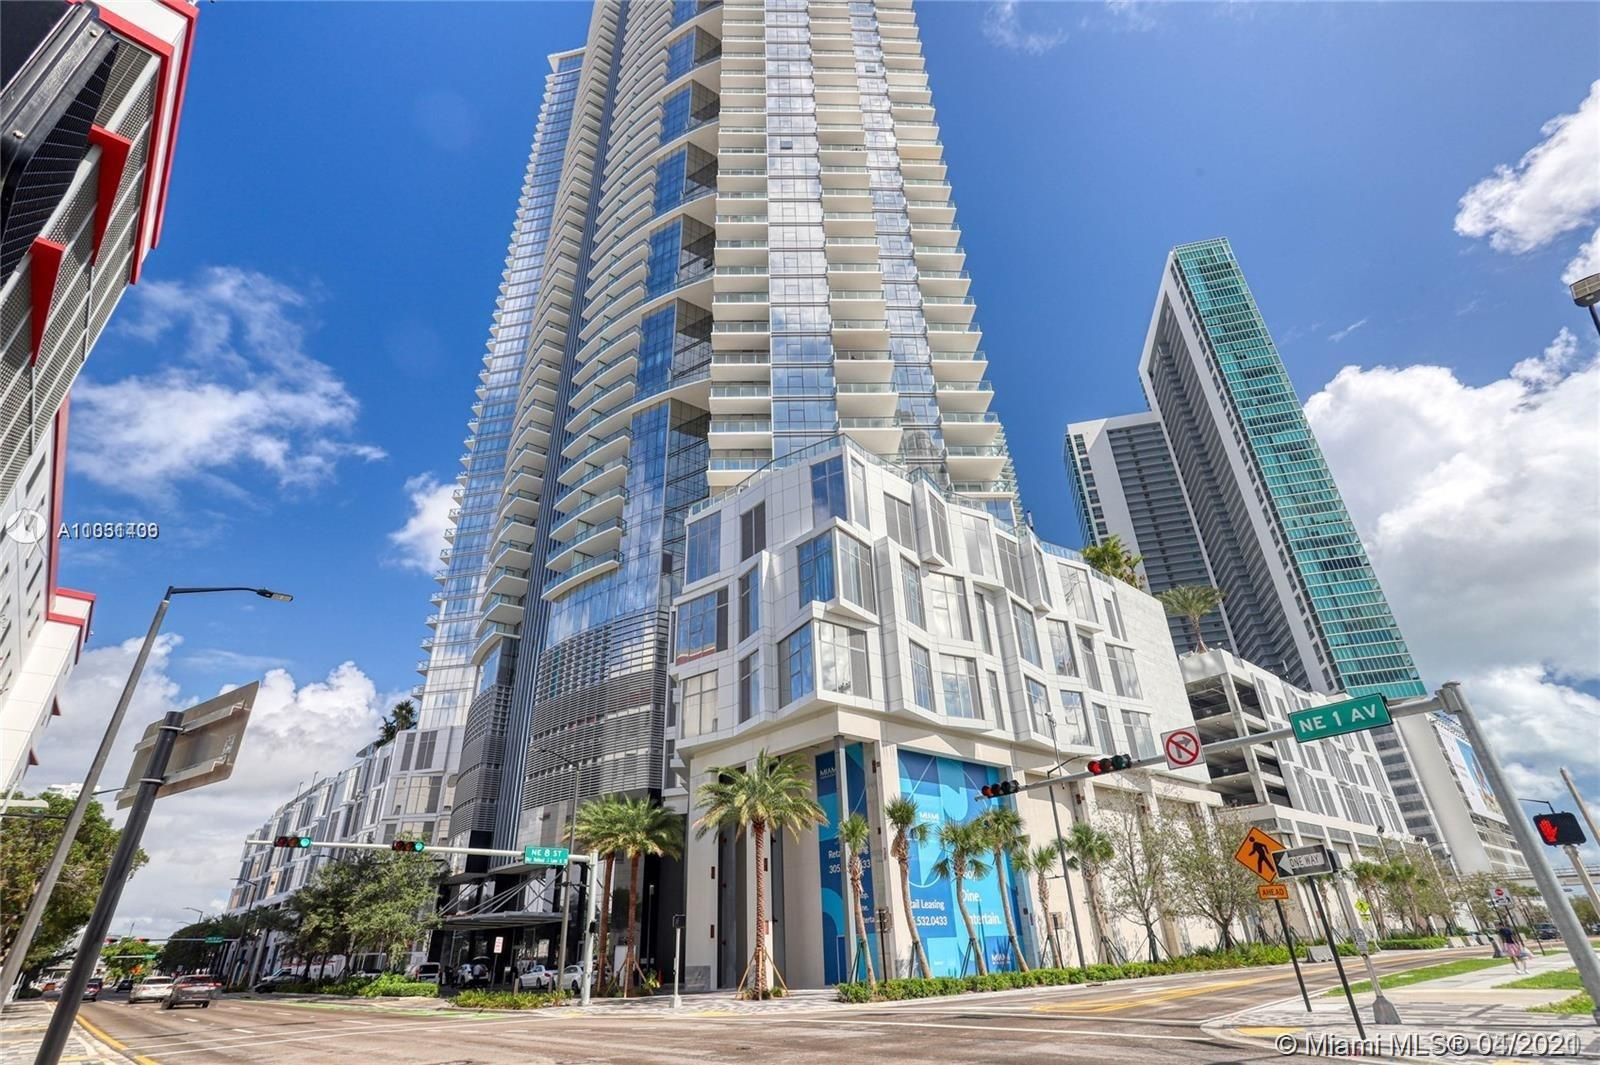 Beautiful and luxurious Condo in Paramount Miami World Center with Ocean views! The condo has a priv